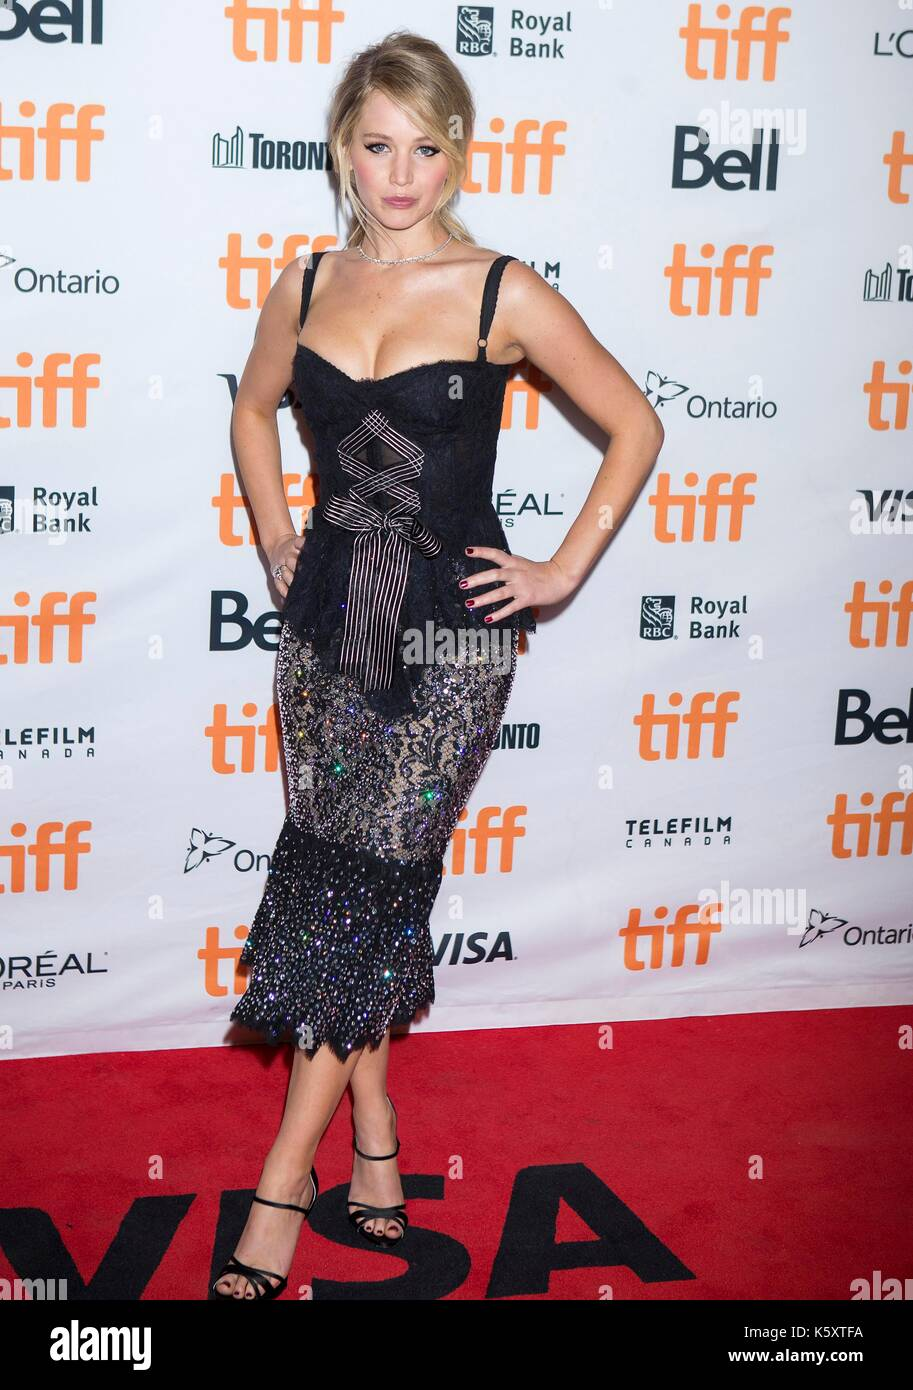 Toronto, Canada. 10th Sep, 2017. Actress Jennifer Lawrence poses for photographs at the North American premiere - Stock Image